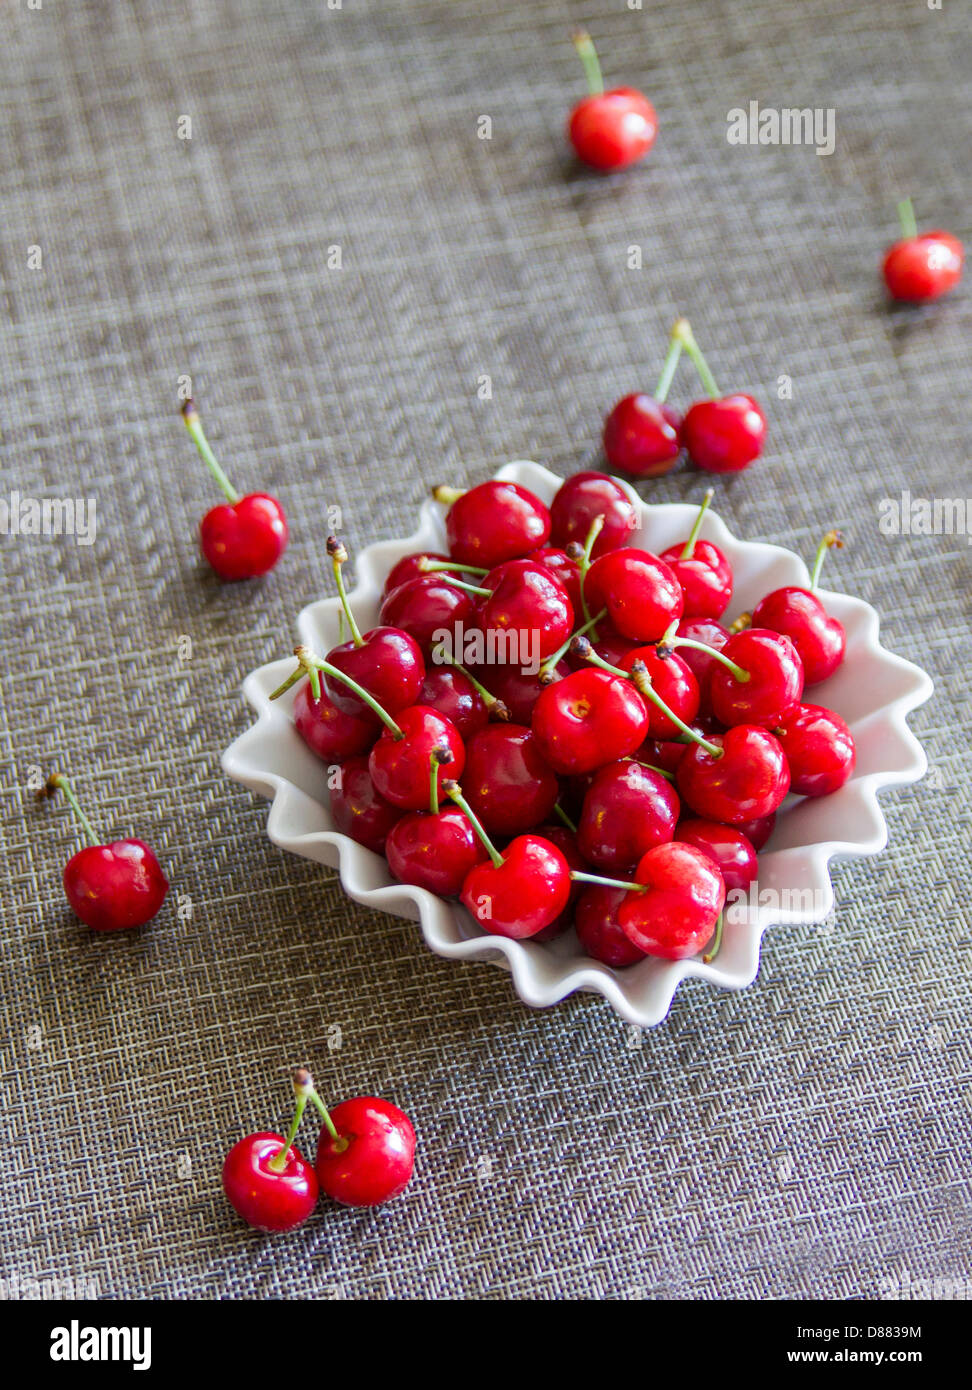 Juicy and fresh, organic cherries. - Stock Image